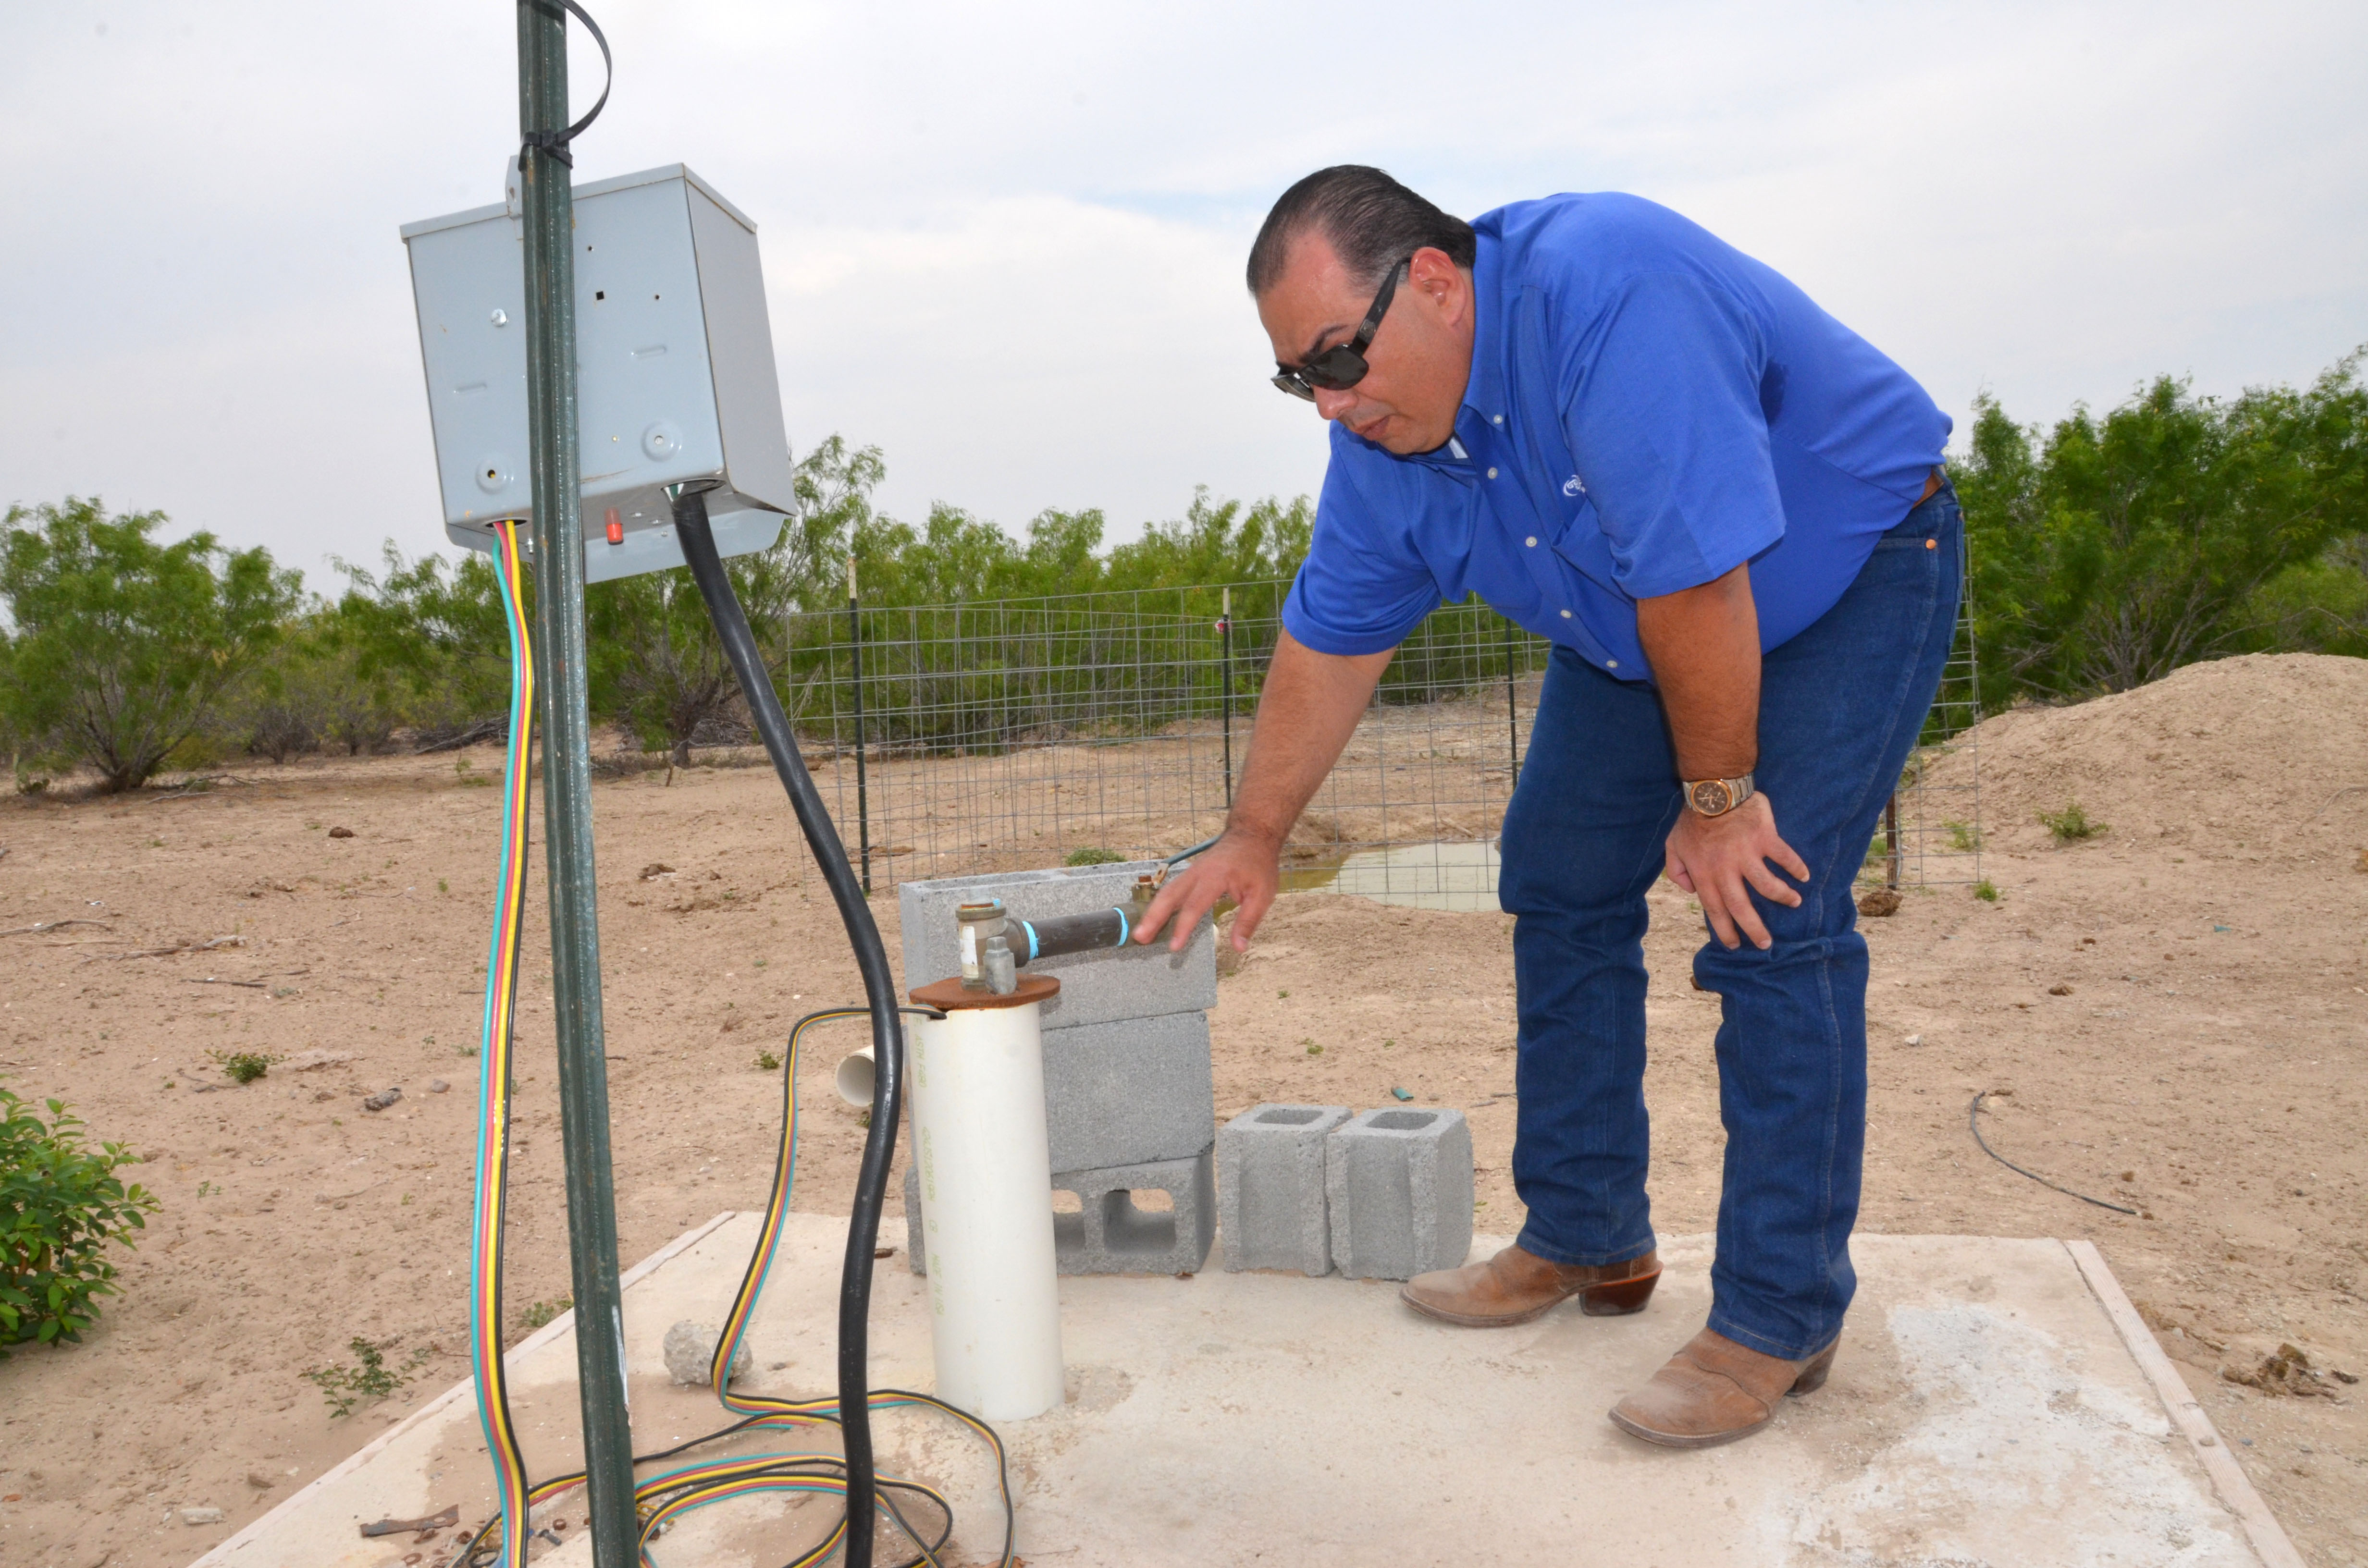 Jorge Espinoza of Laredo, Texas, worked with NRCS to install a solar-powered pump, making his farm m